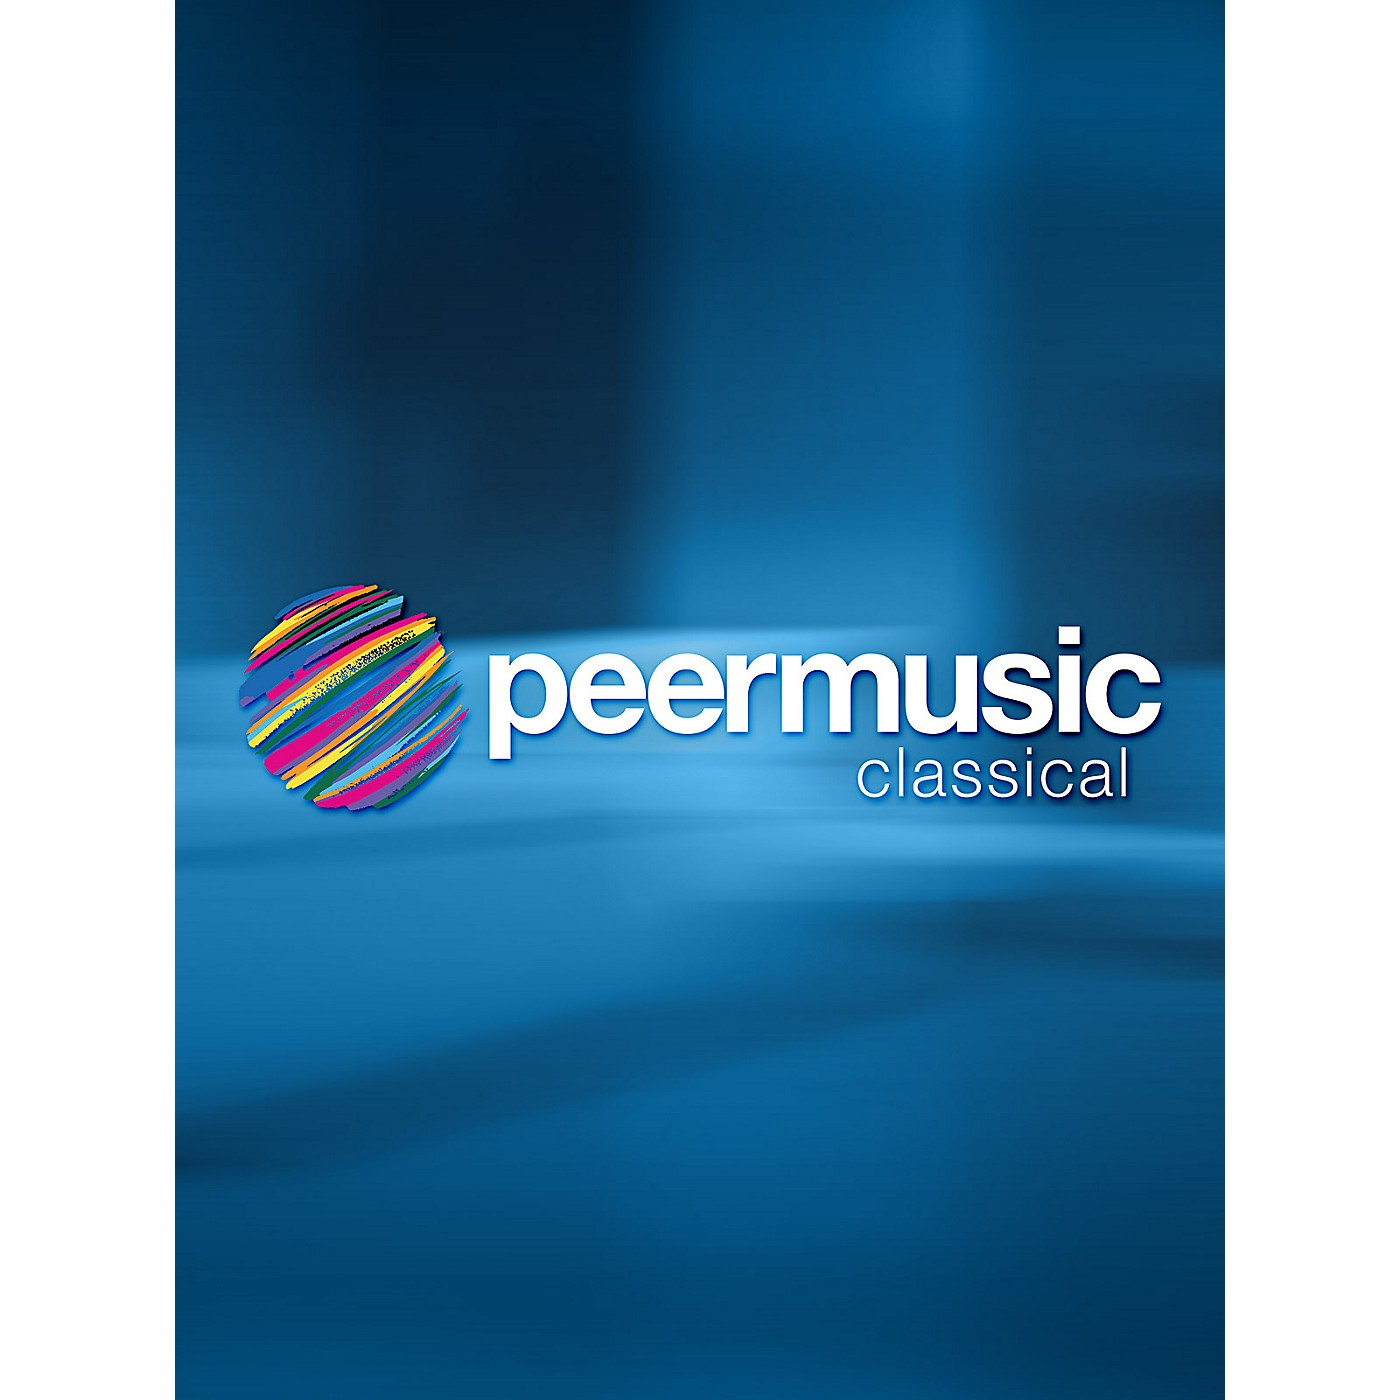 Peer Music Symphony No. 3 Peermusic Classical Series Softcover Composed by Jose Serebrier thumbnail